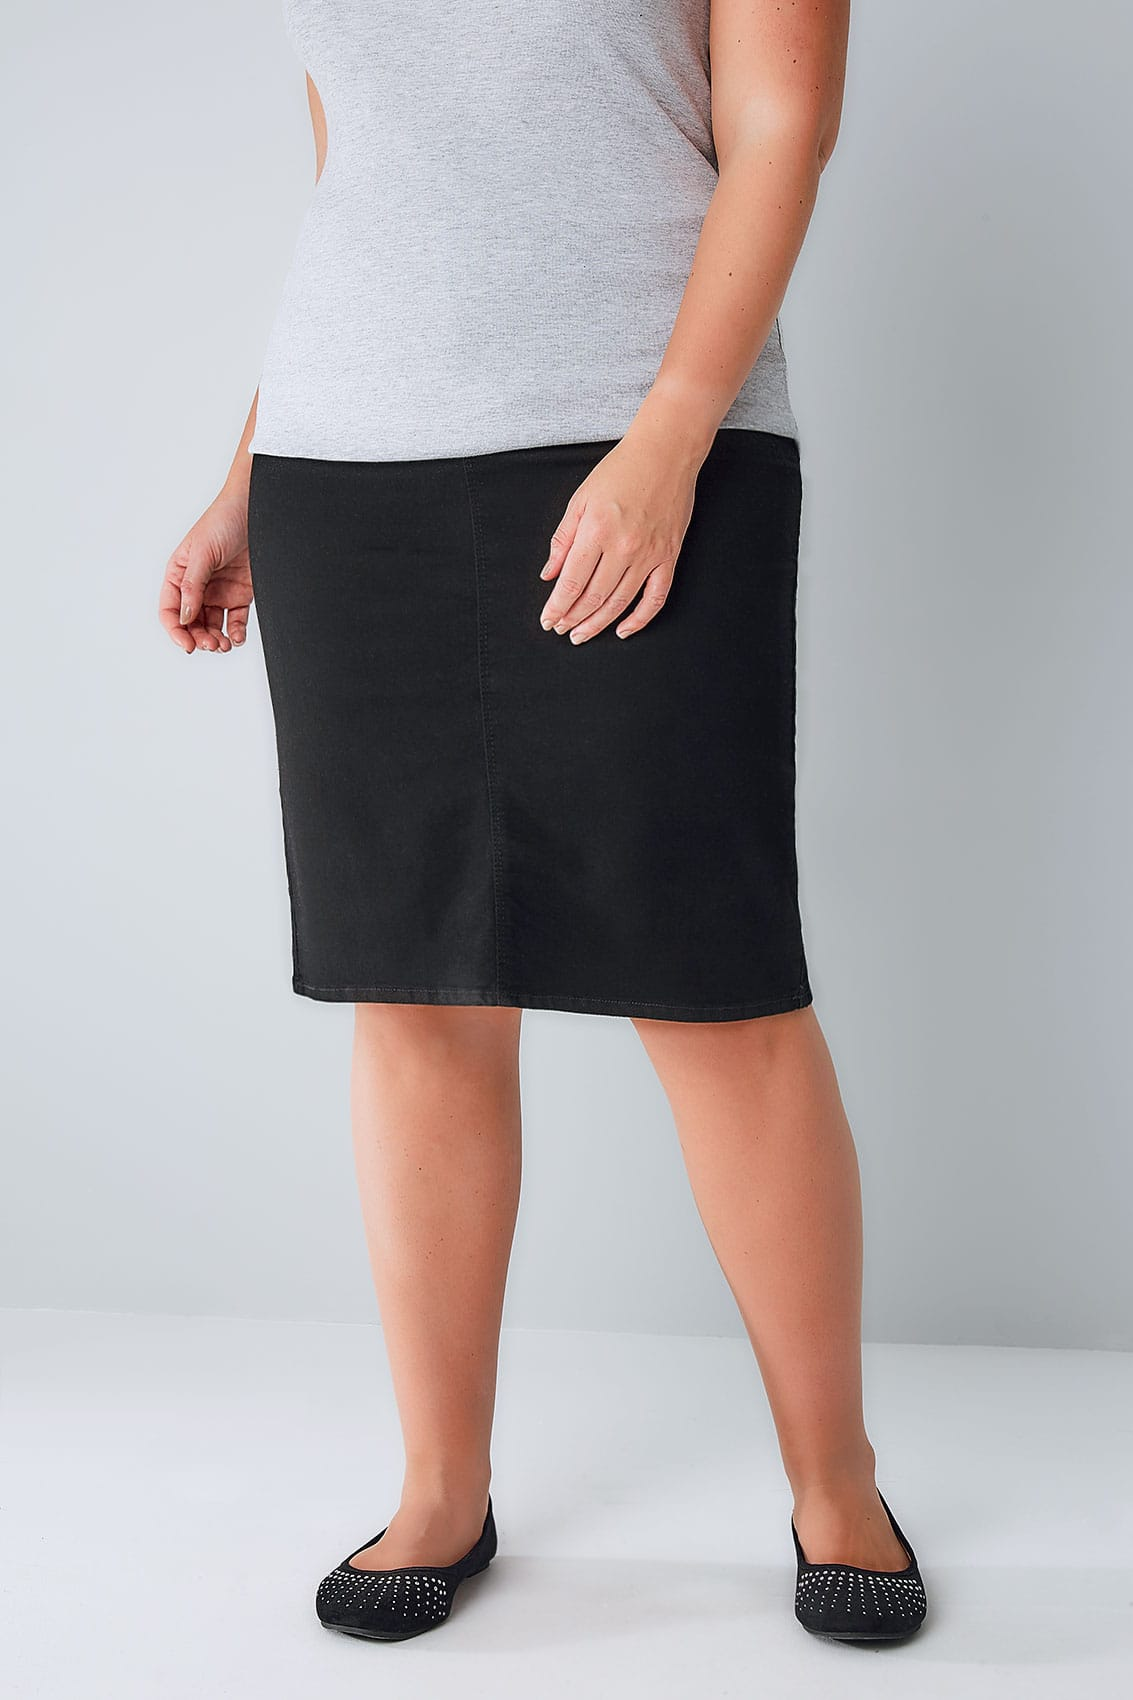 Black Denim Pull On Pencil Skirt Plus Size 16 to 28